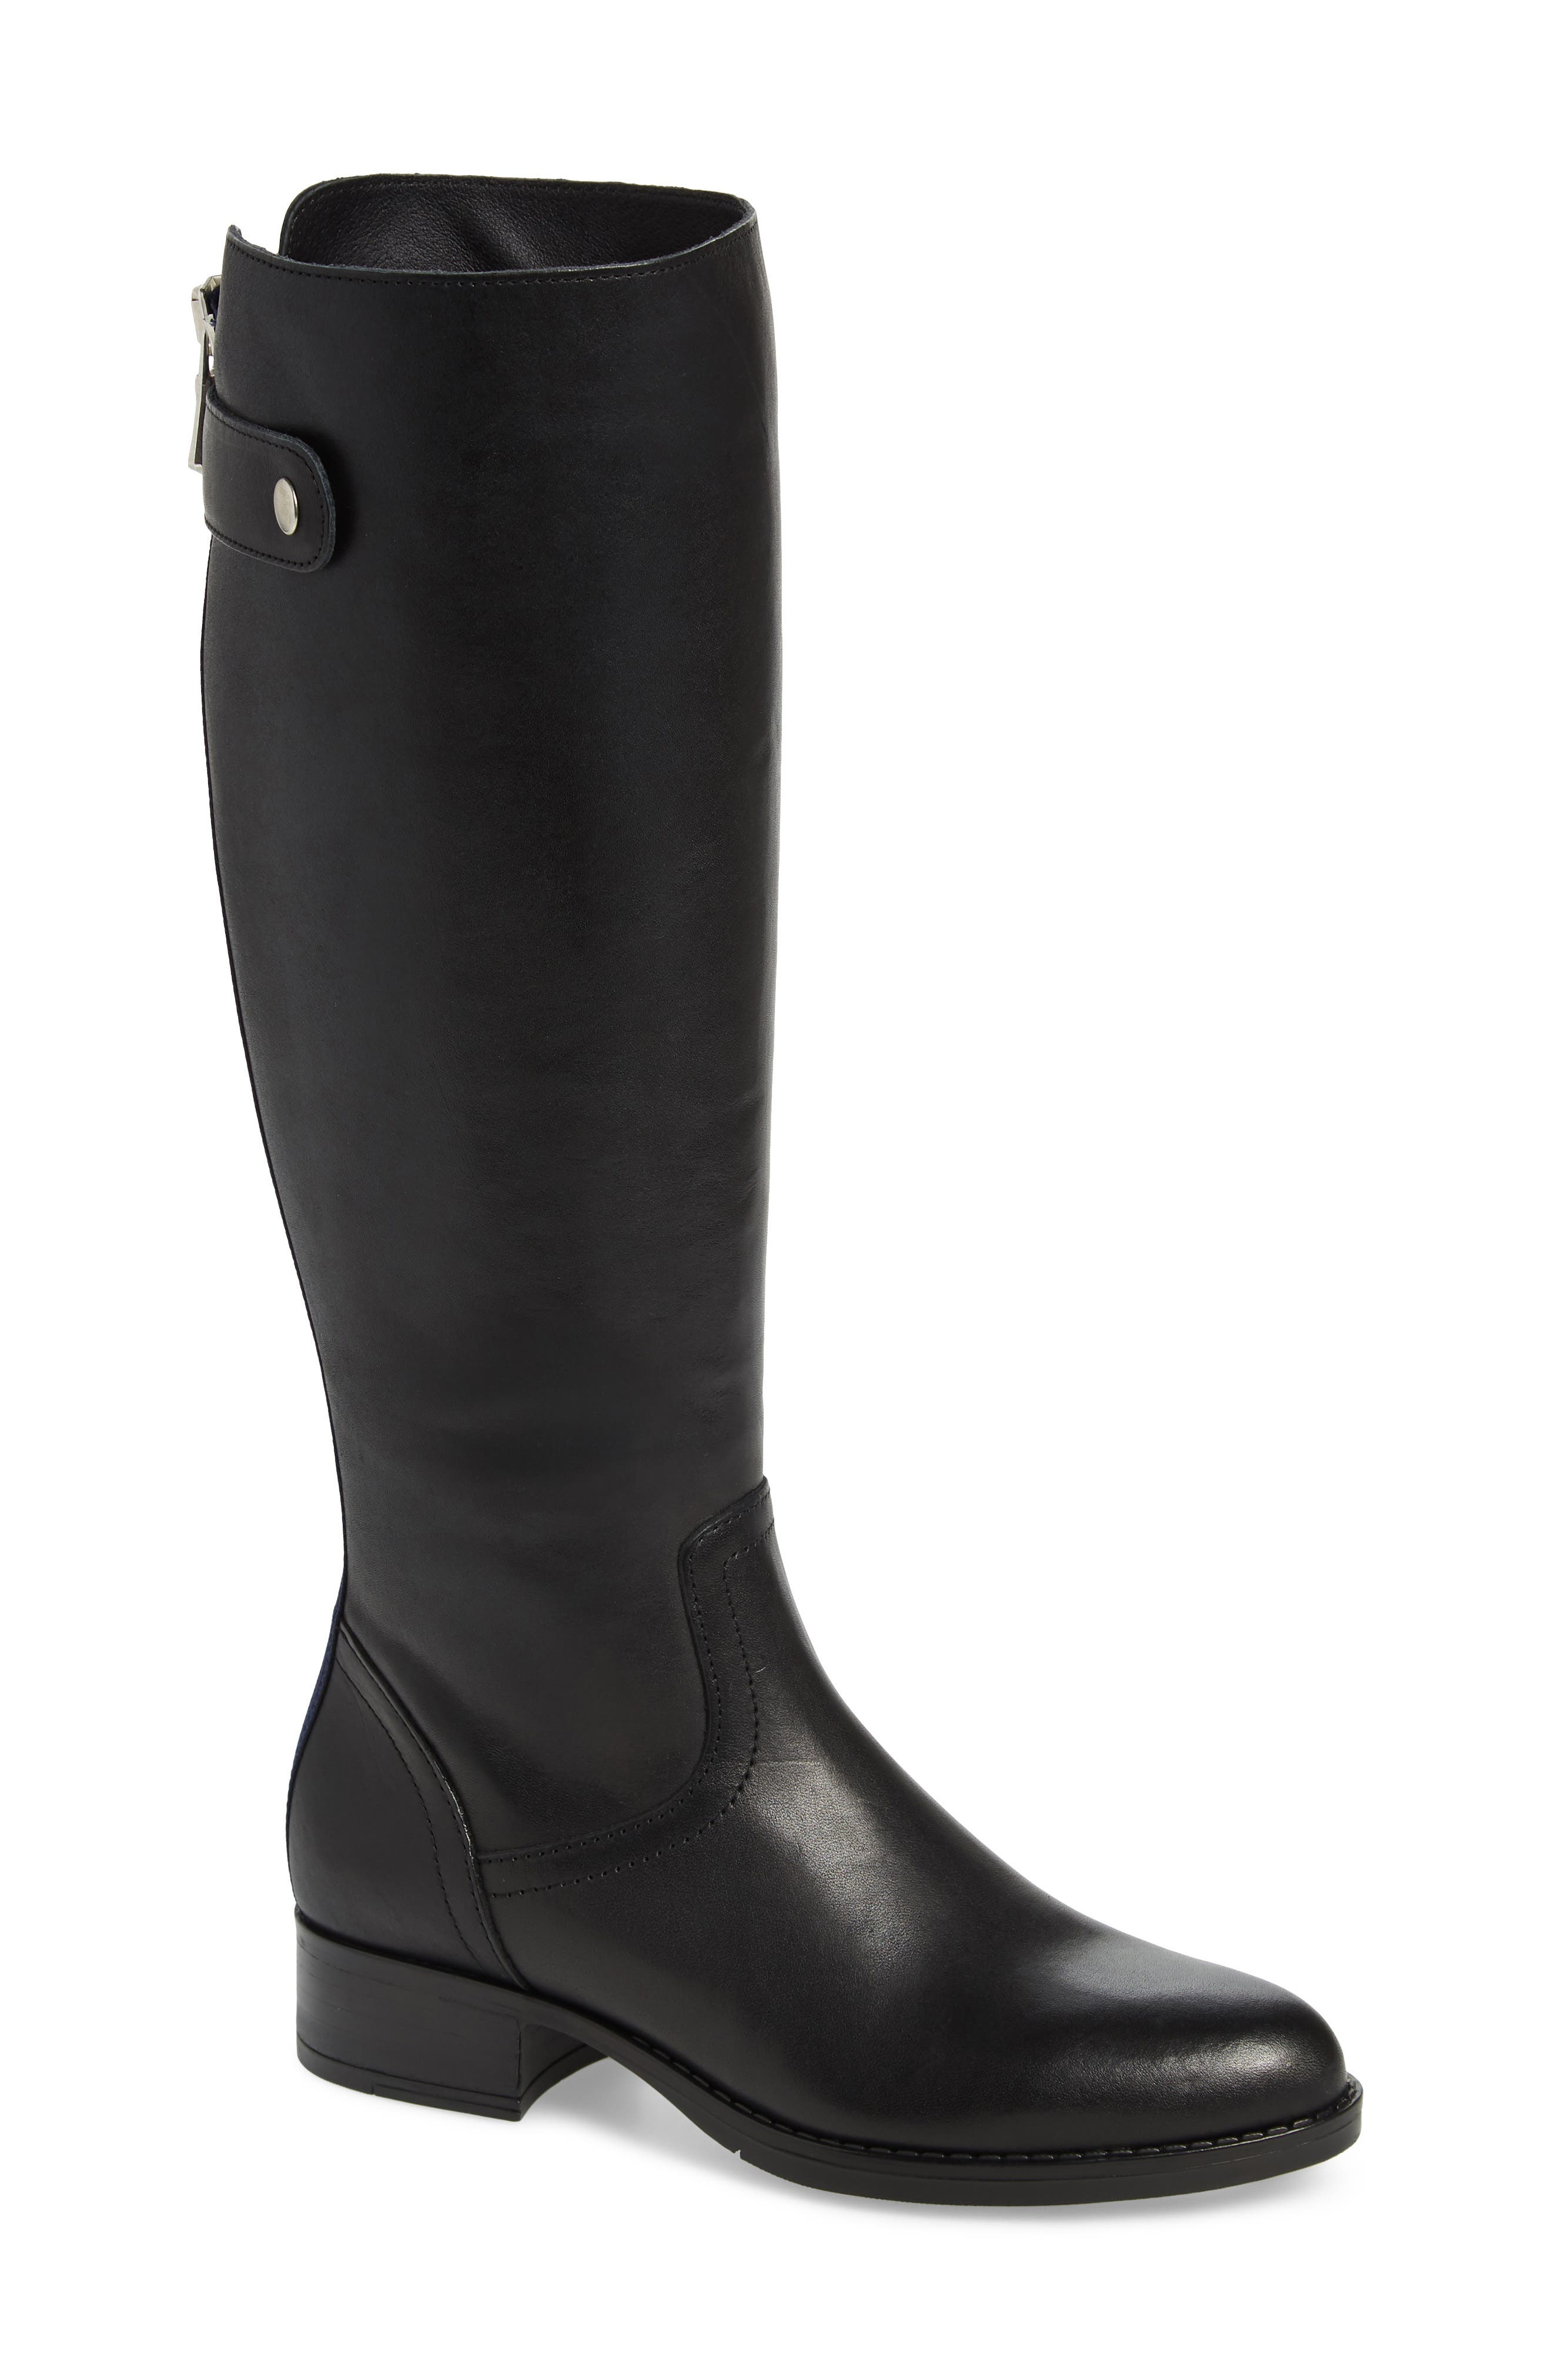 Journal Knee High Boot,                             Main thumbnail 1, color,                             BLACK LEATHER